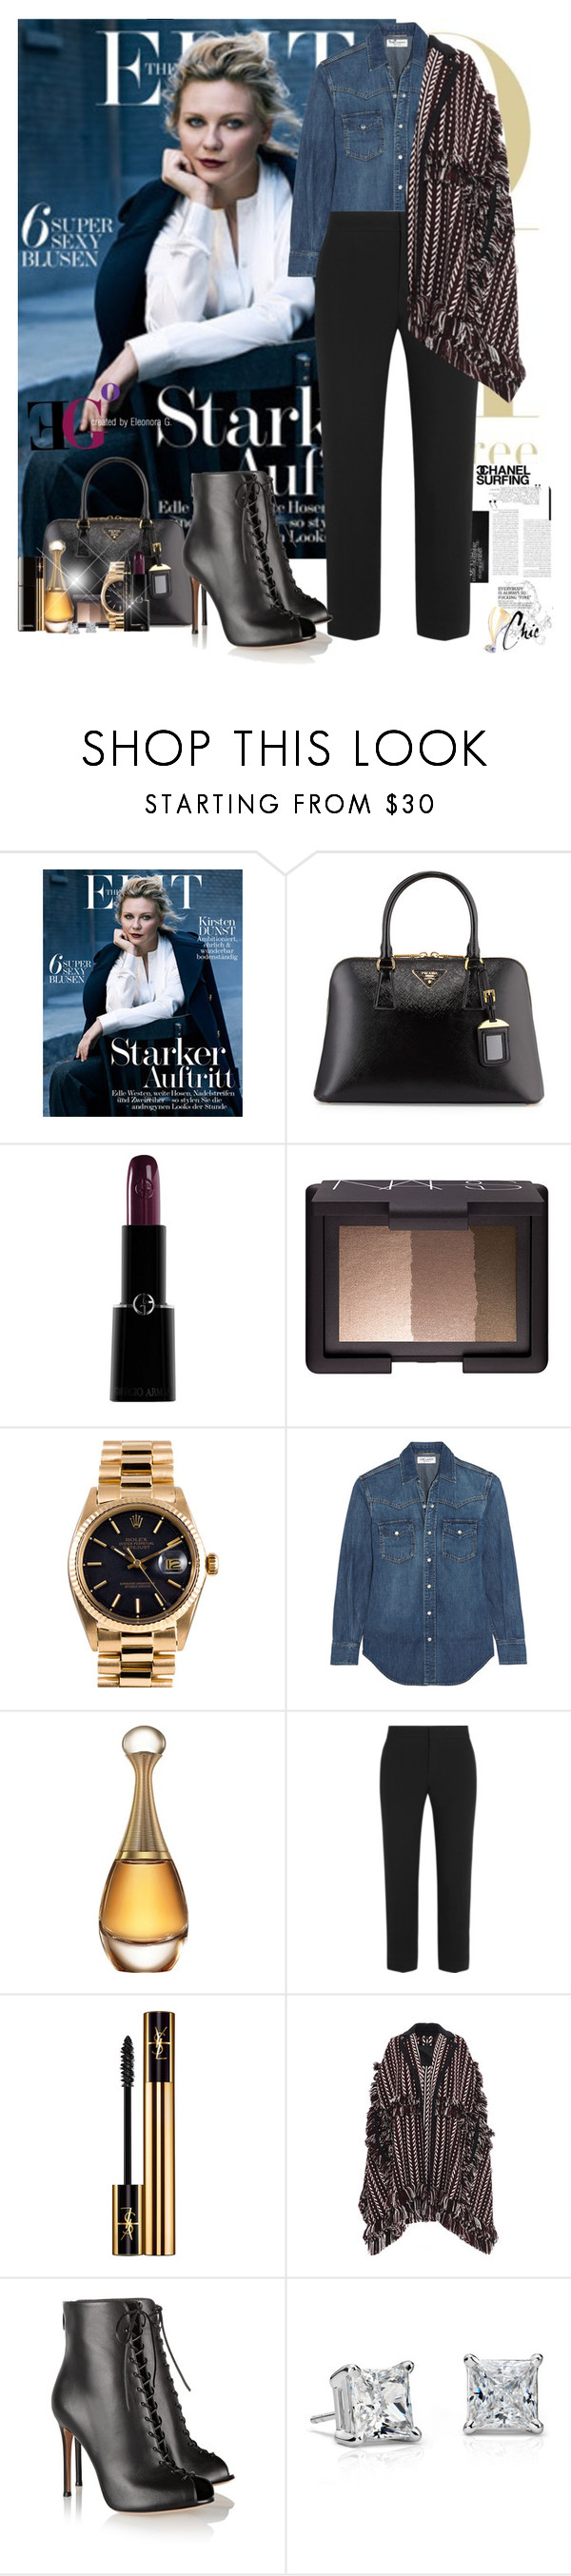 """""""Who are you?"""" by eleonoragocevska ❤ liked on Polyvore featuring Mara Hoffman, Prada, Armani Beauty, NARS Cosmetics, Rolex, Chanel, Yves Saint Laurent, Christian Dior, Chloé and Burberry"""